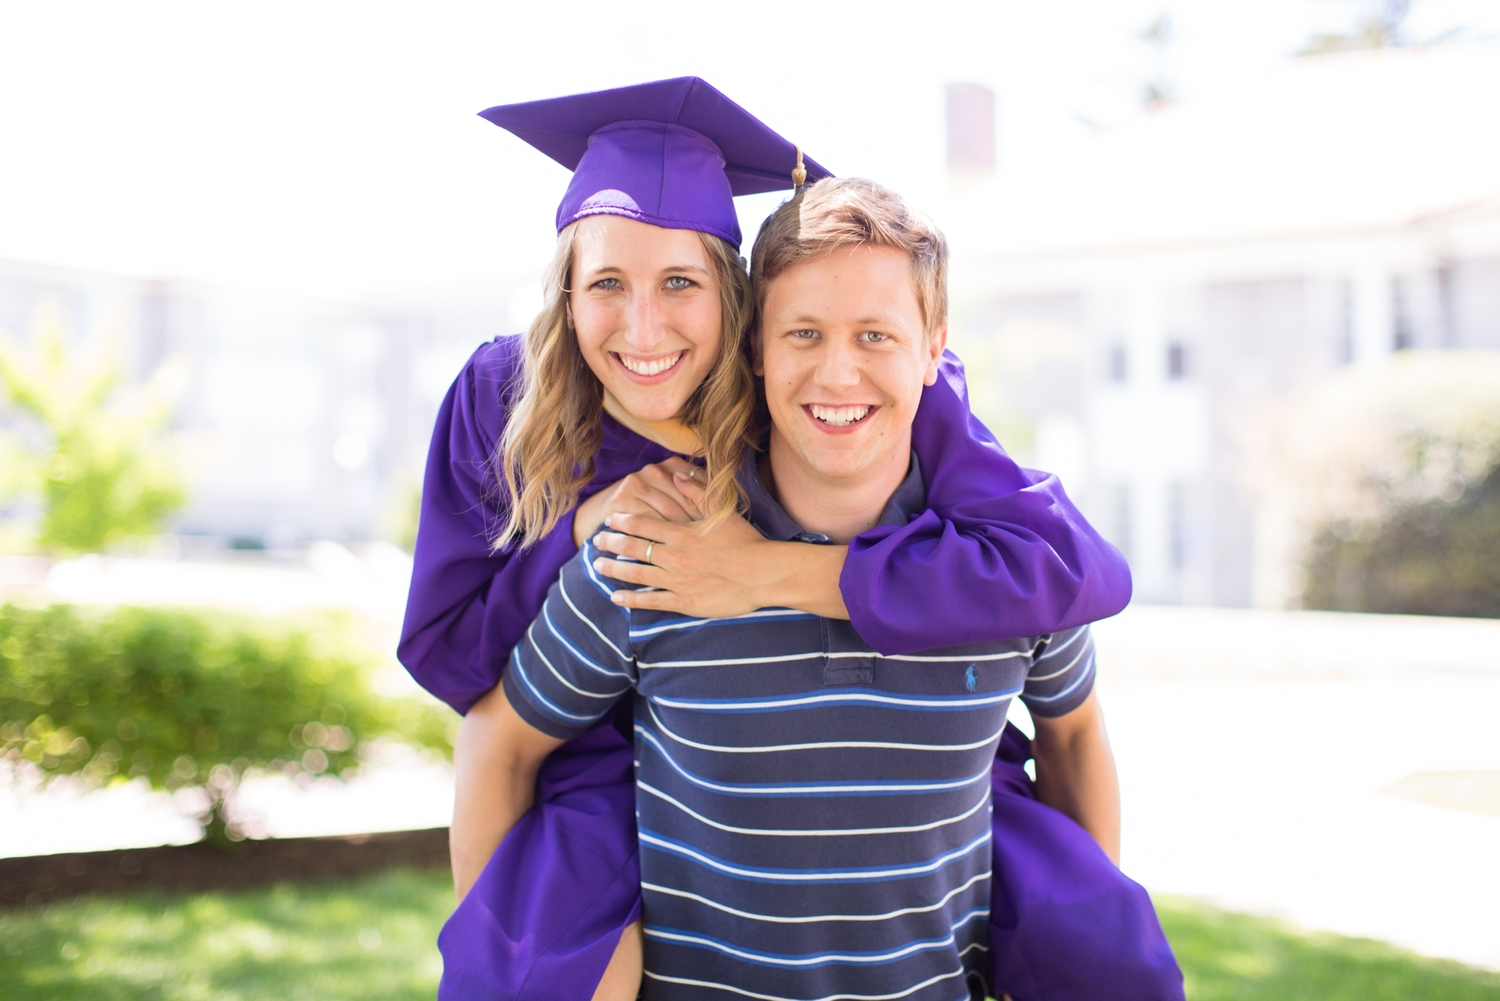 Dorable Jmu Cap And Gown Model - Wedding and flowers ispiration ...